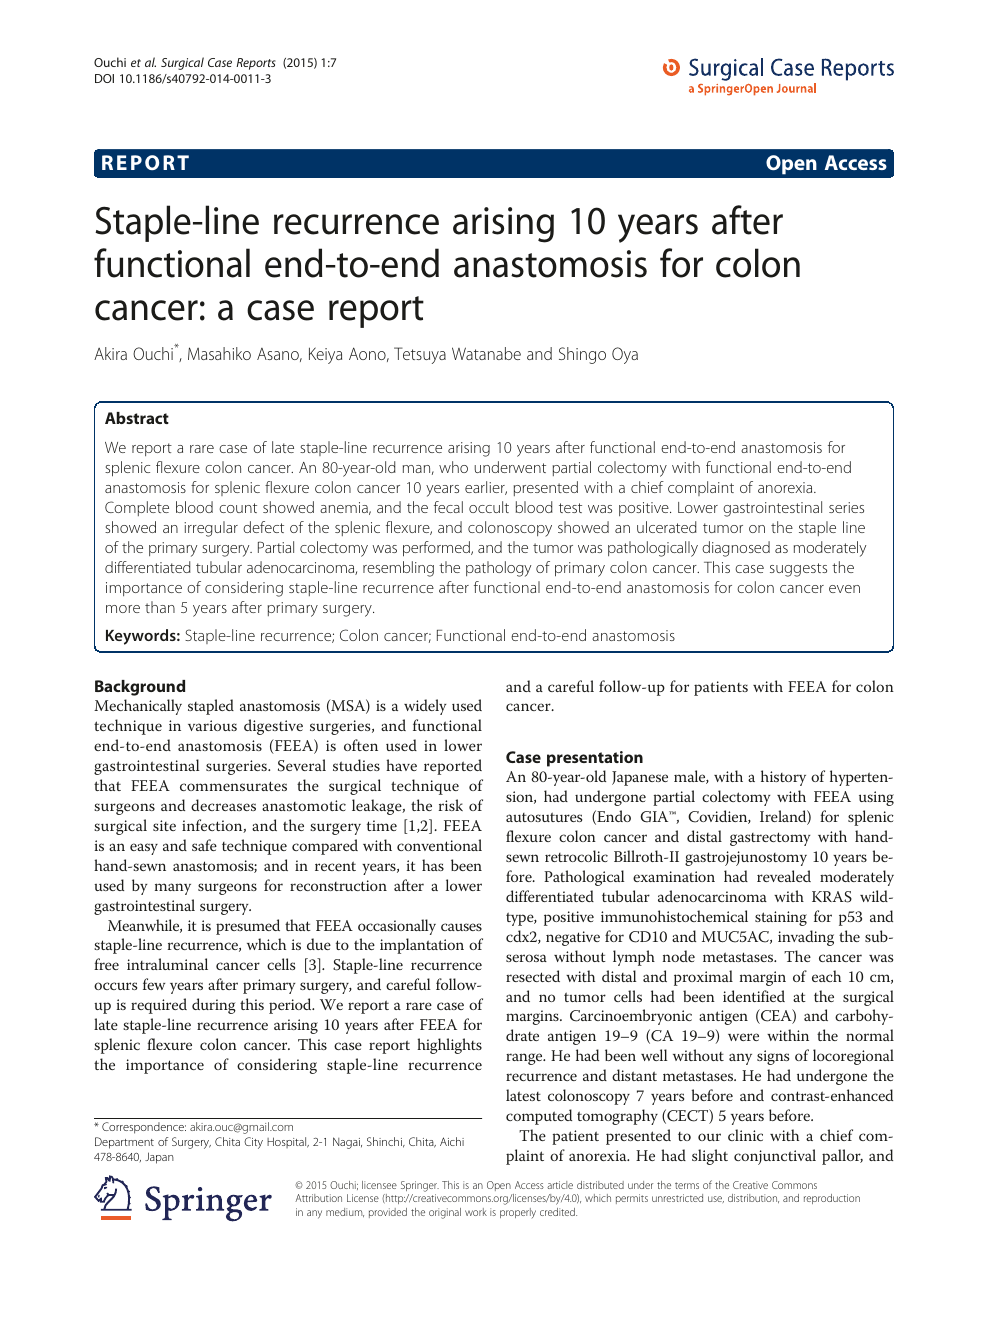 Staple Line Recurrence Arising 10 Years After Functional End To End Anastomosis For Colon Cancer A Case Report Topic Of Research Paper In Clinical Medicine Download Scholarly Article Pdf And Read For Free On